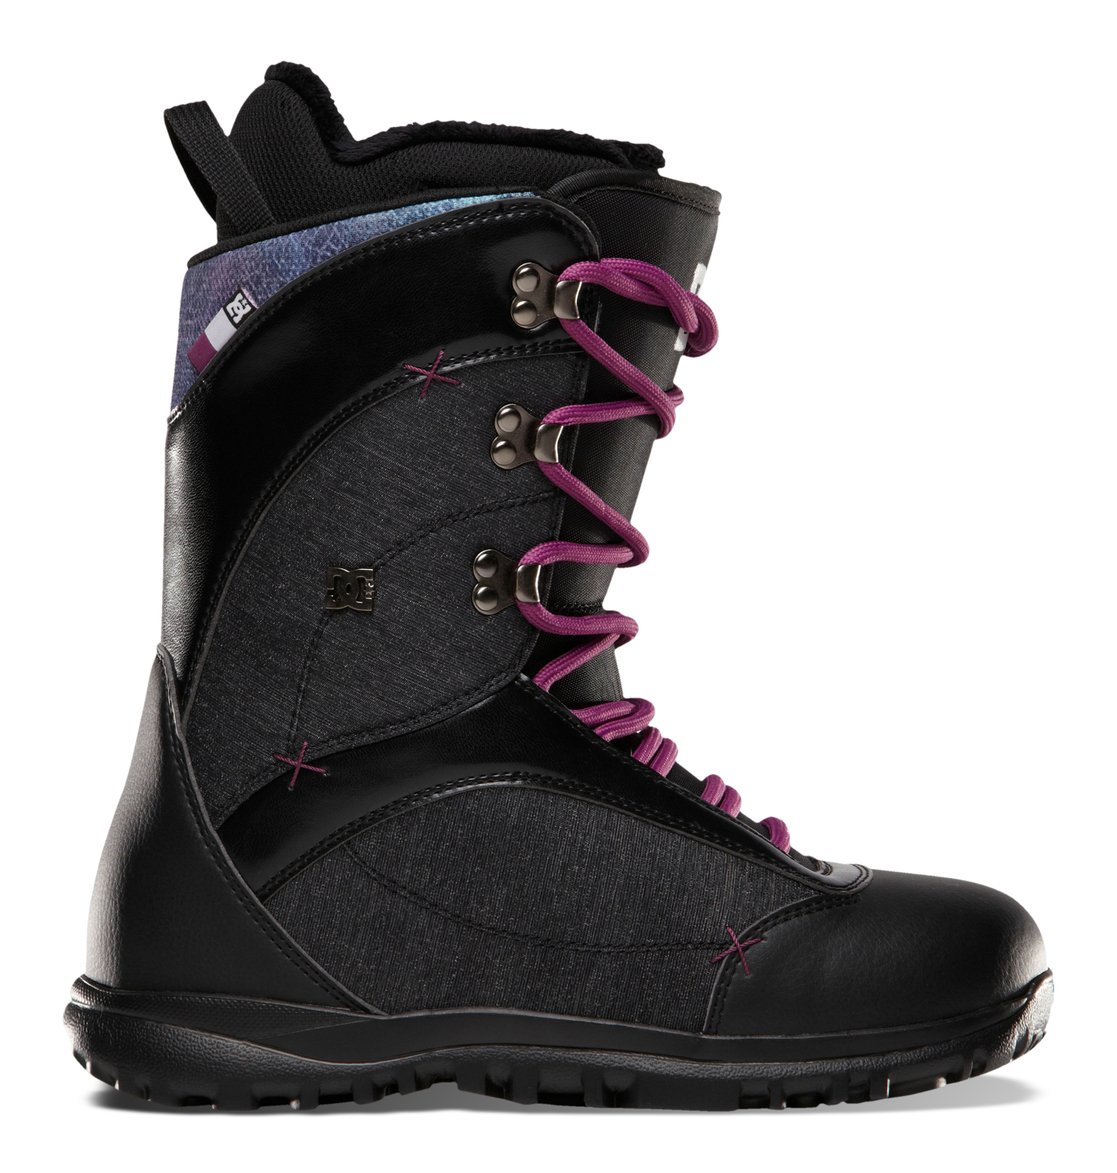 New DC Phase Snowboard Boots  Women39s 2008  Evo Outlet